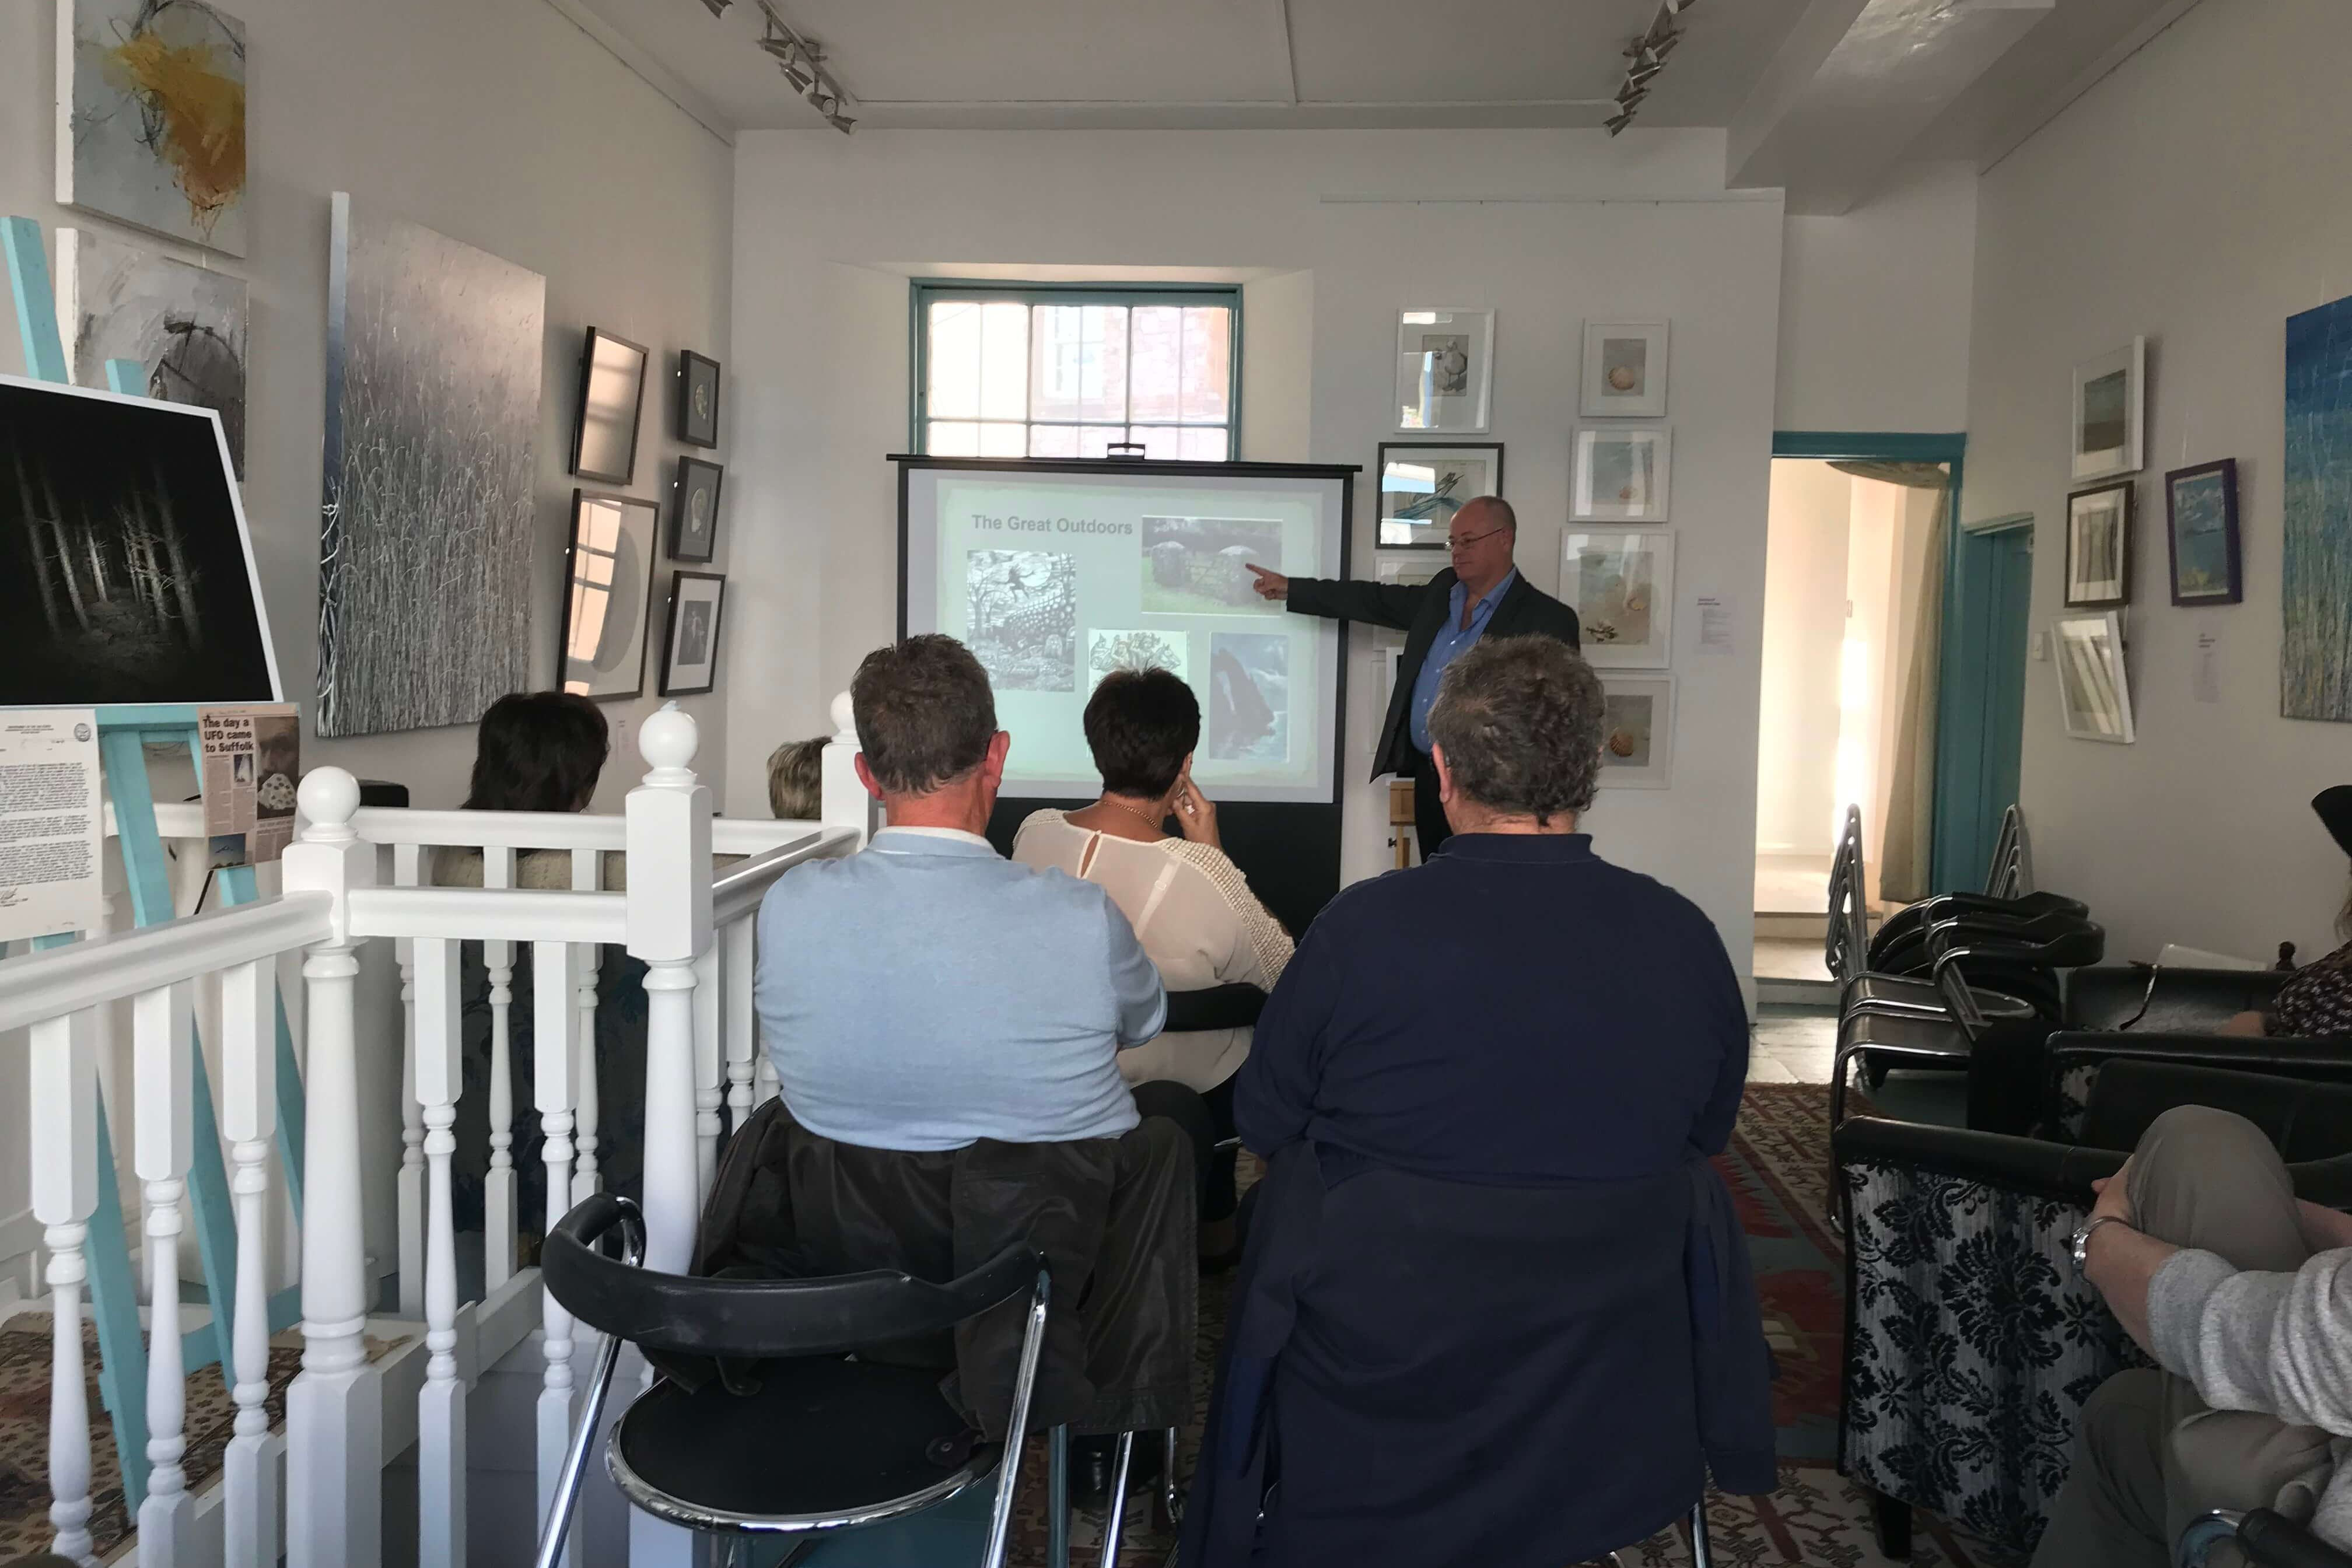 Kevin Dixon local history talk at the artisan gallery